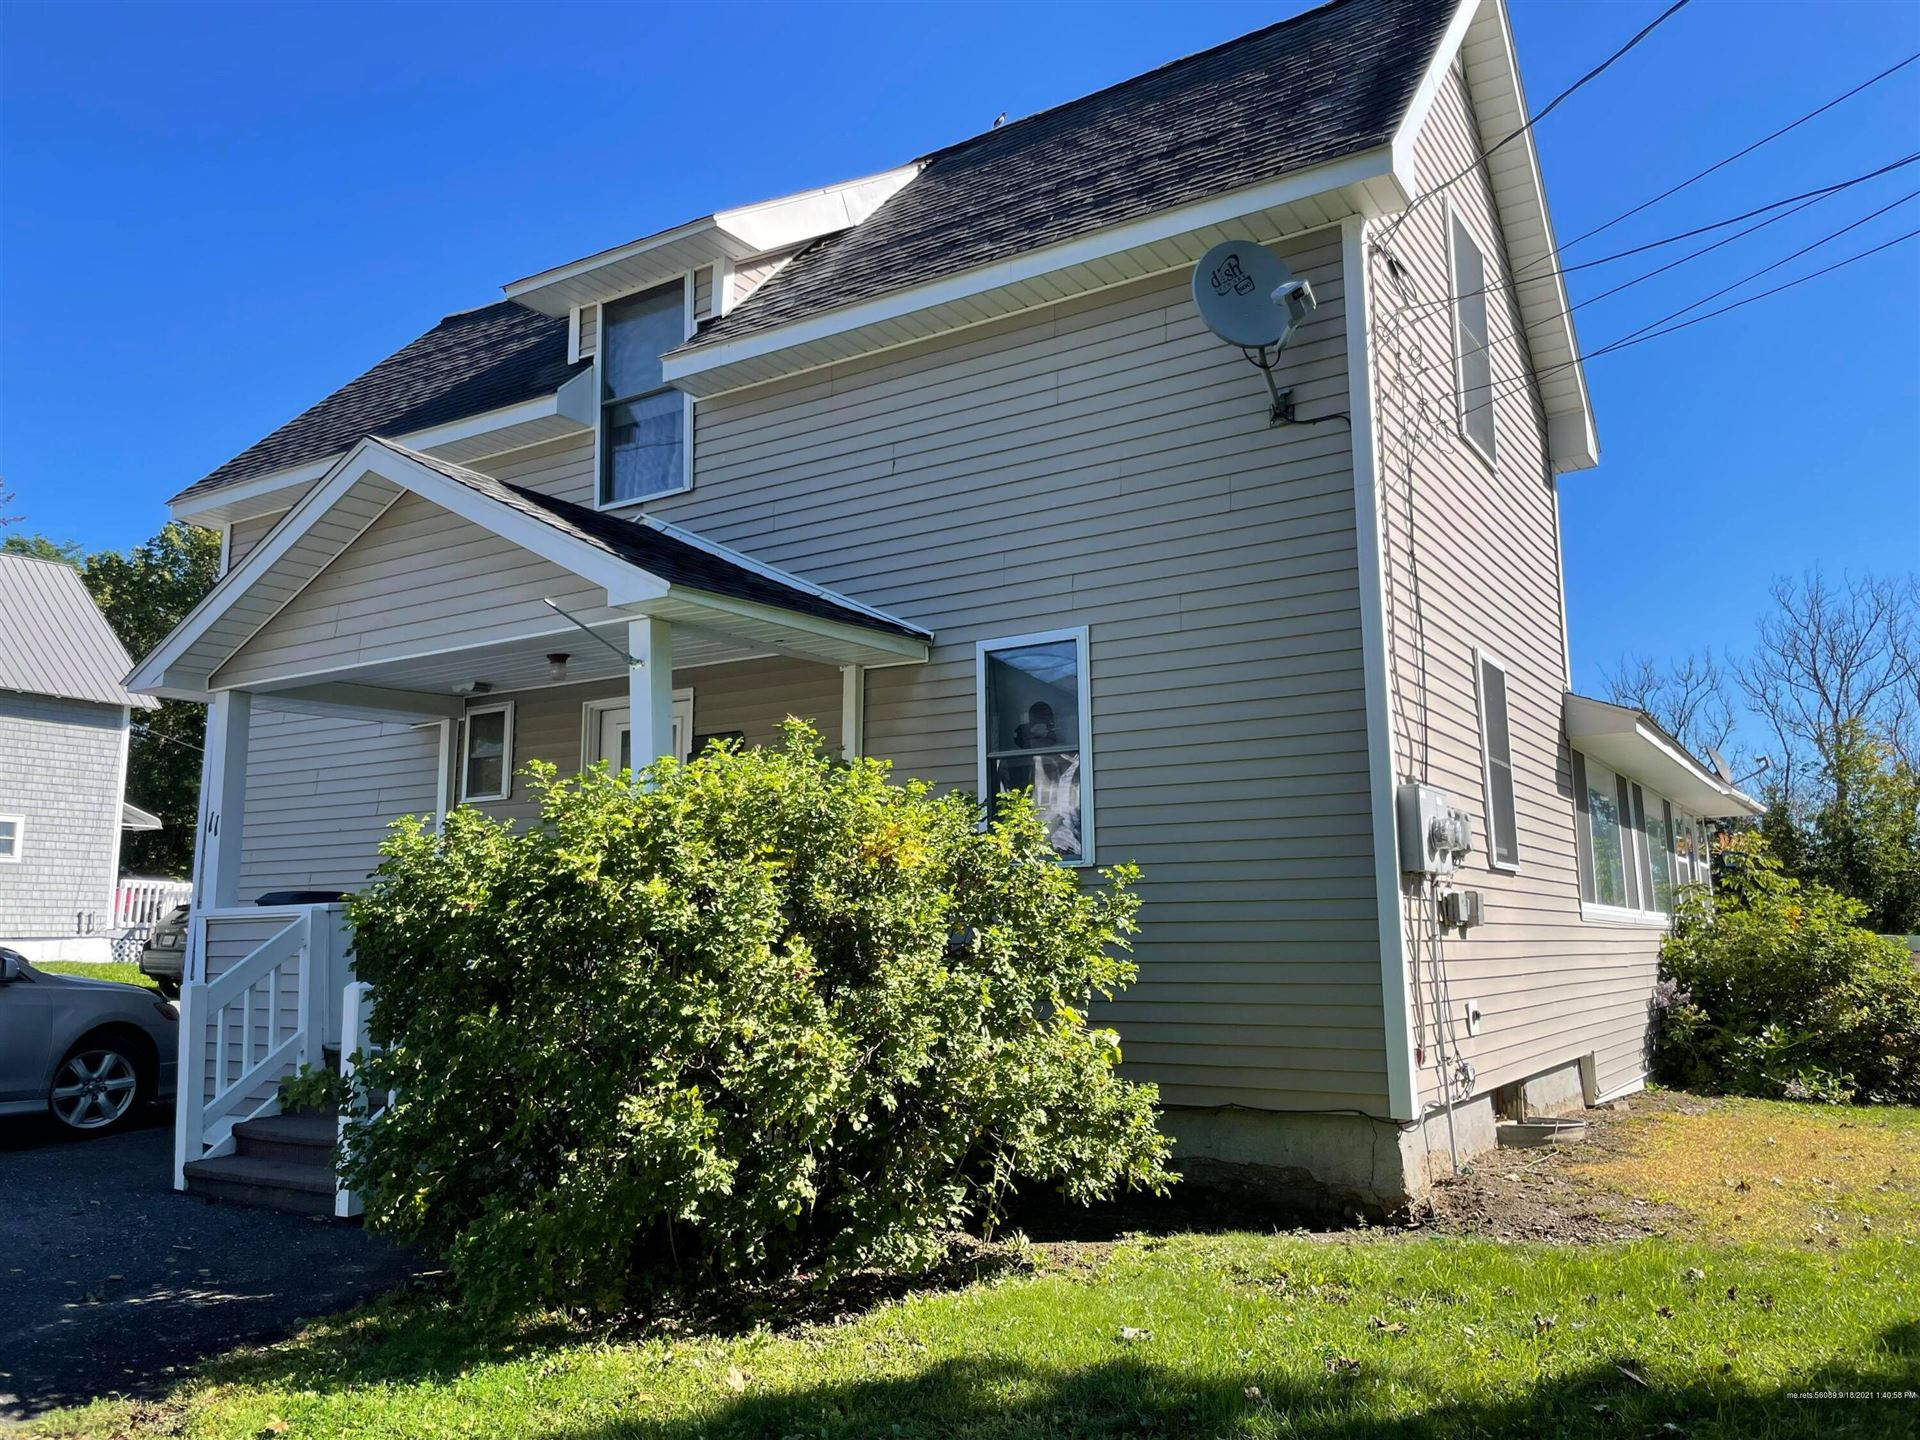 Photo of 11 Page Avenue, Caribou, ME 04736 (MLS # 1509365)